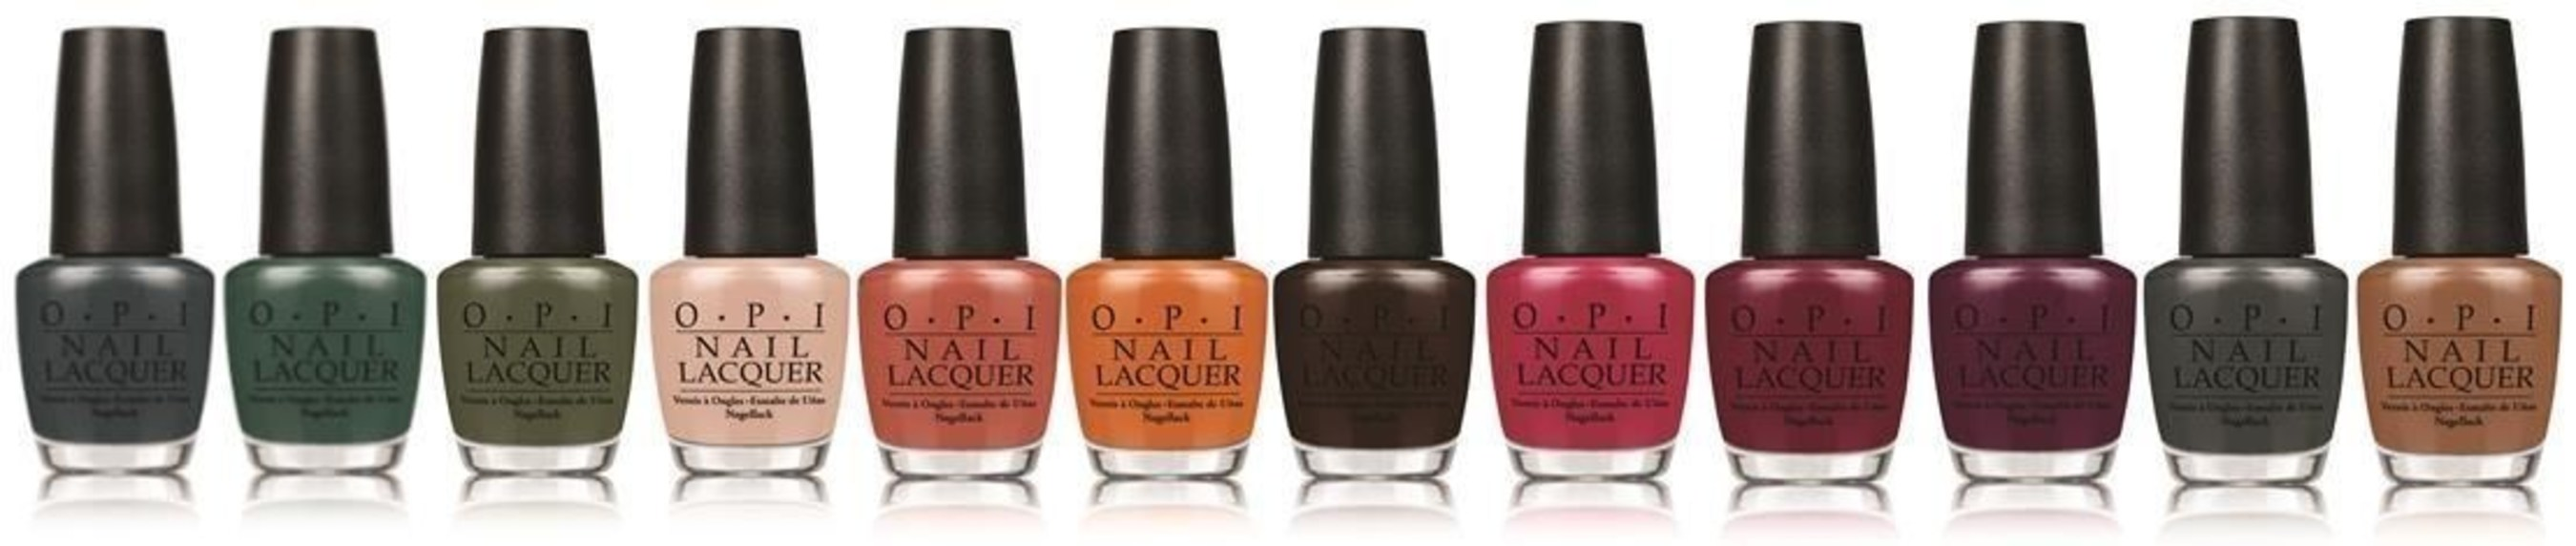 With its magnificent mix of the historical and the cosmopolitan - Washington, D.C. is one of the world's most compelling cities.  It's also the inspiration for OPI's fall/winter lacquer collection. (PRNewsFoto/OPI)